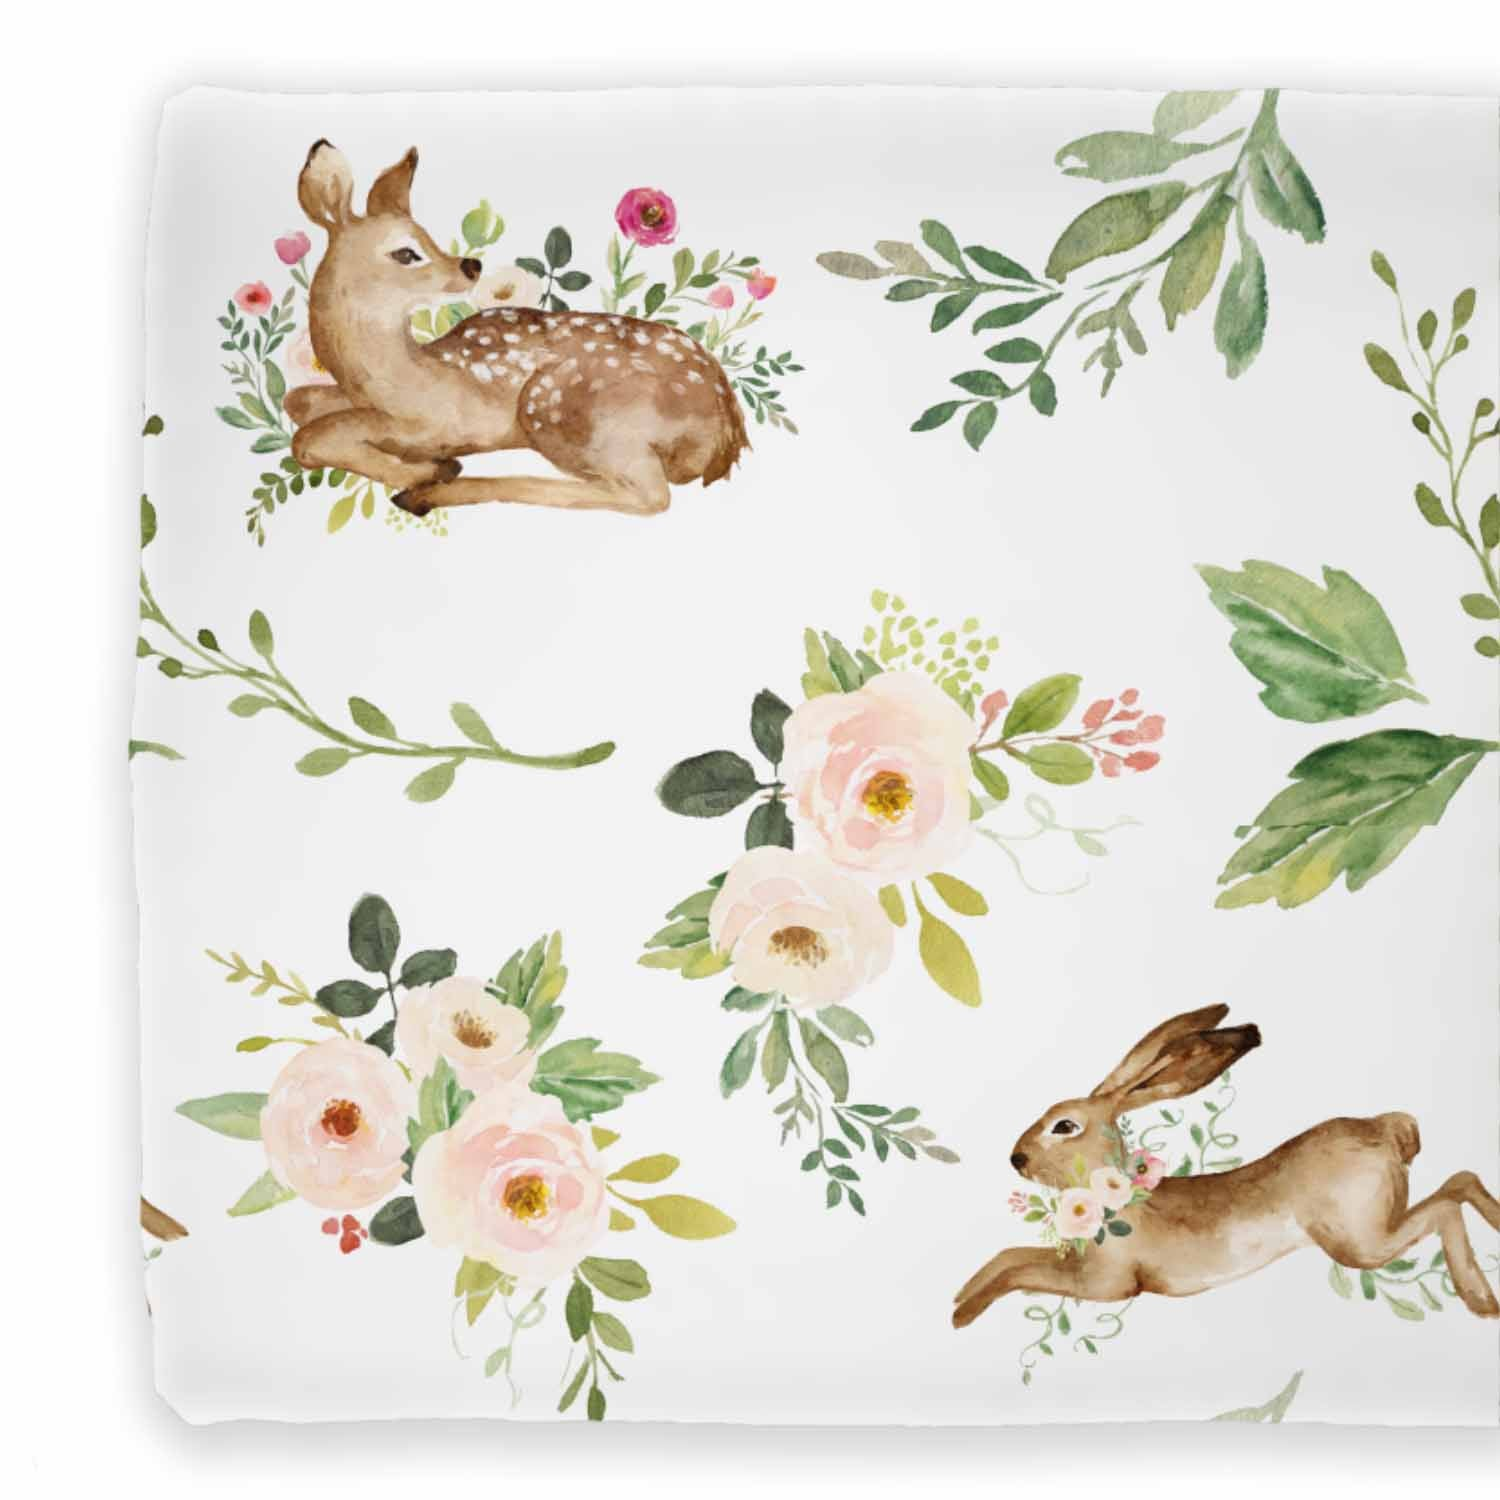 Changing pad cover with a pattern of flowers, deer, and bunny.